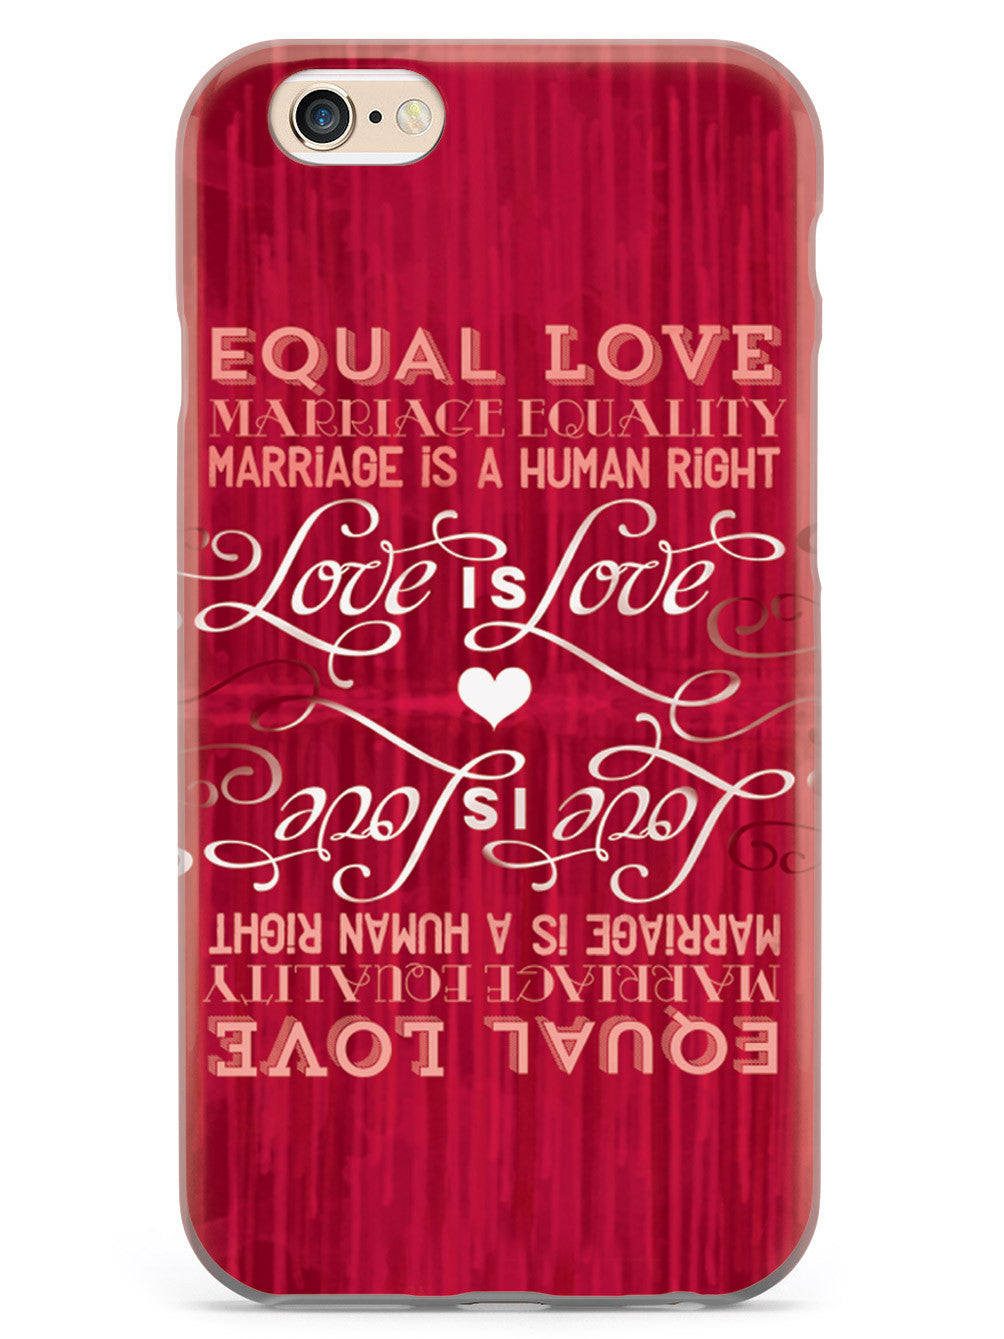 Marriage Equality - Equal Rights, Love is Love Case